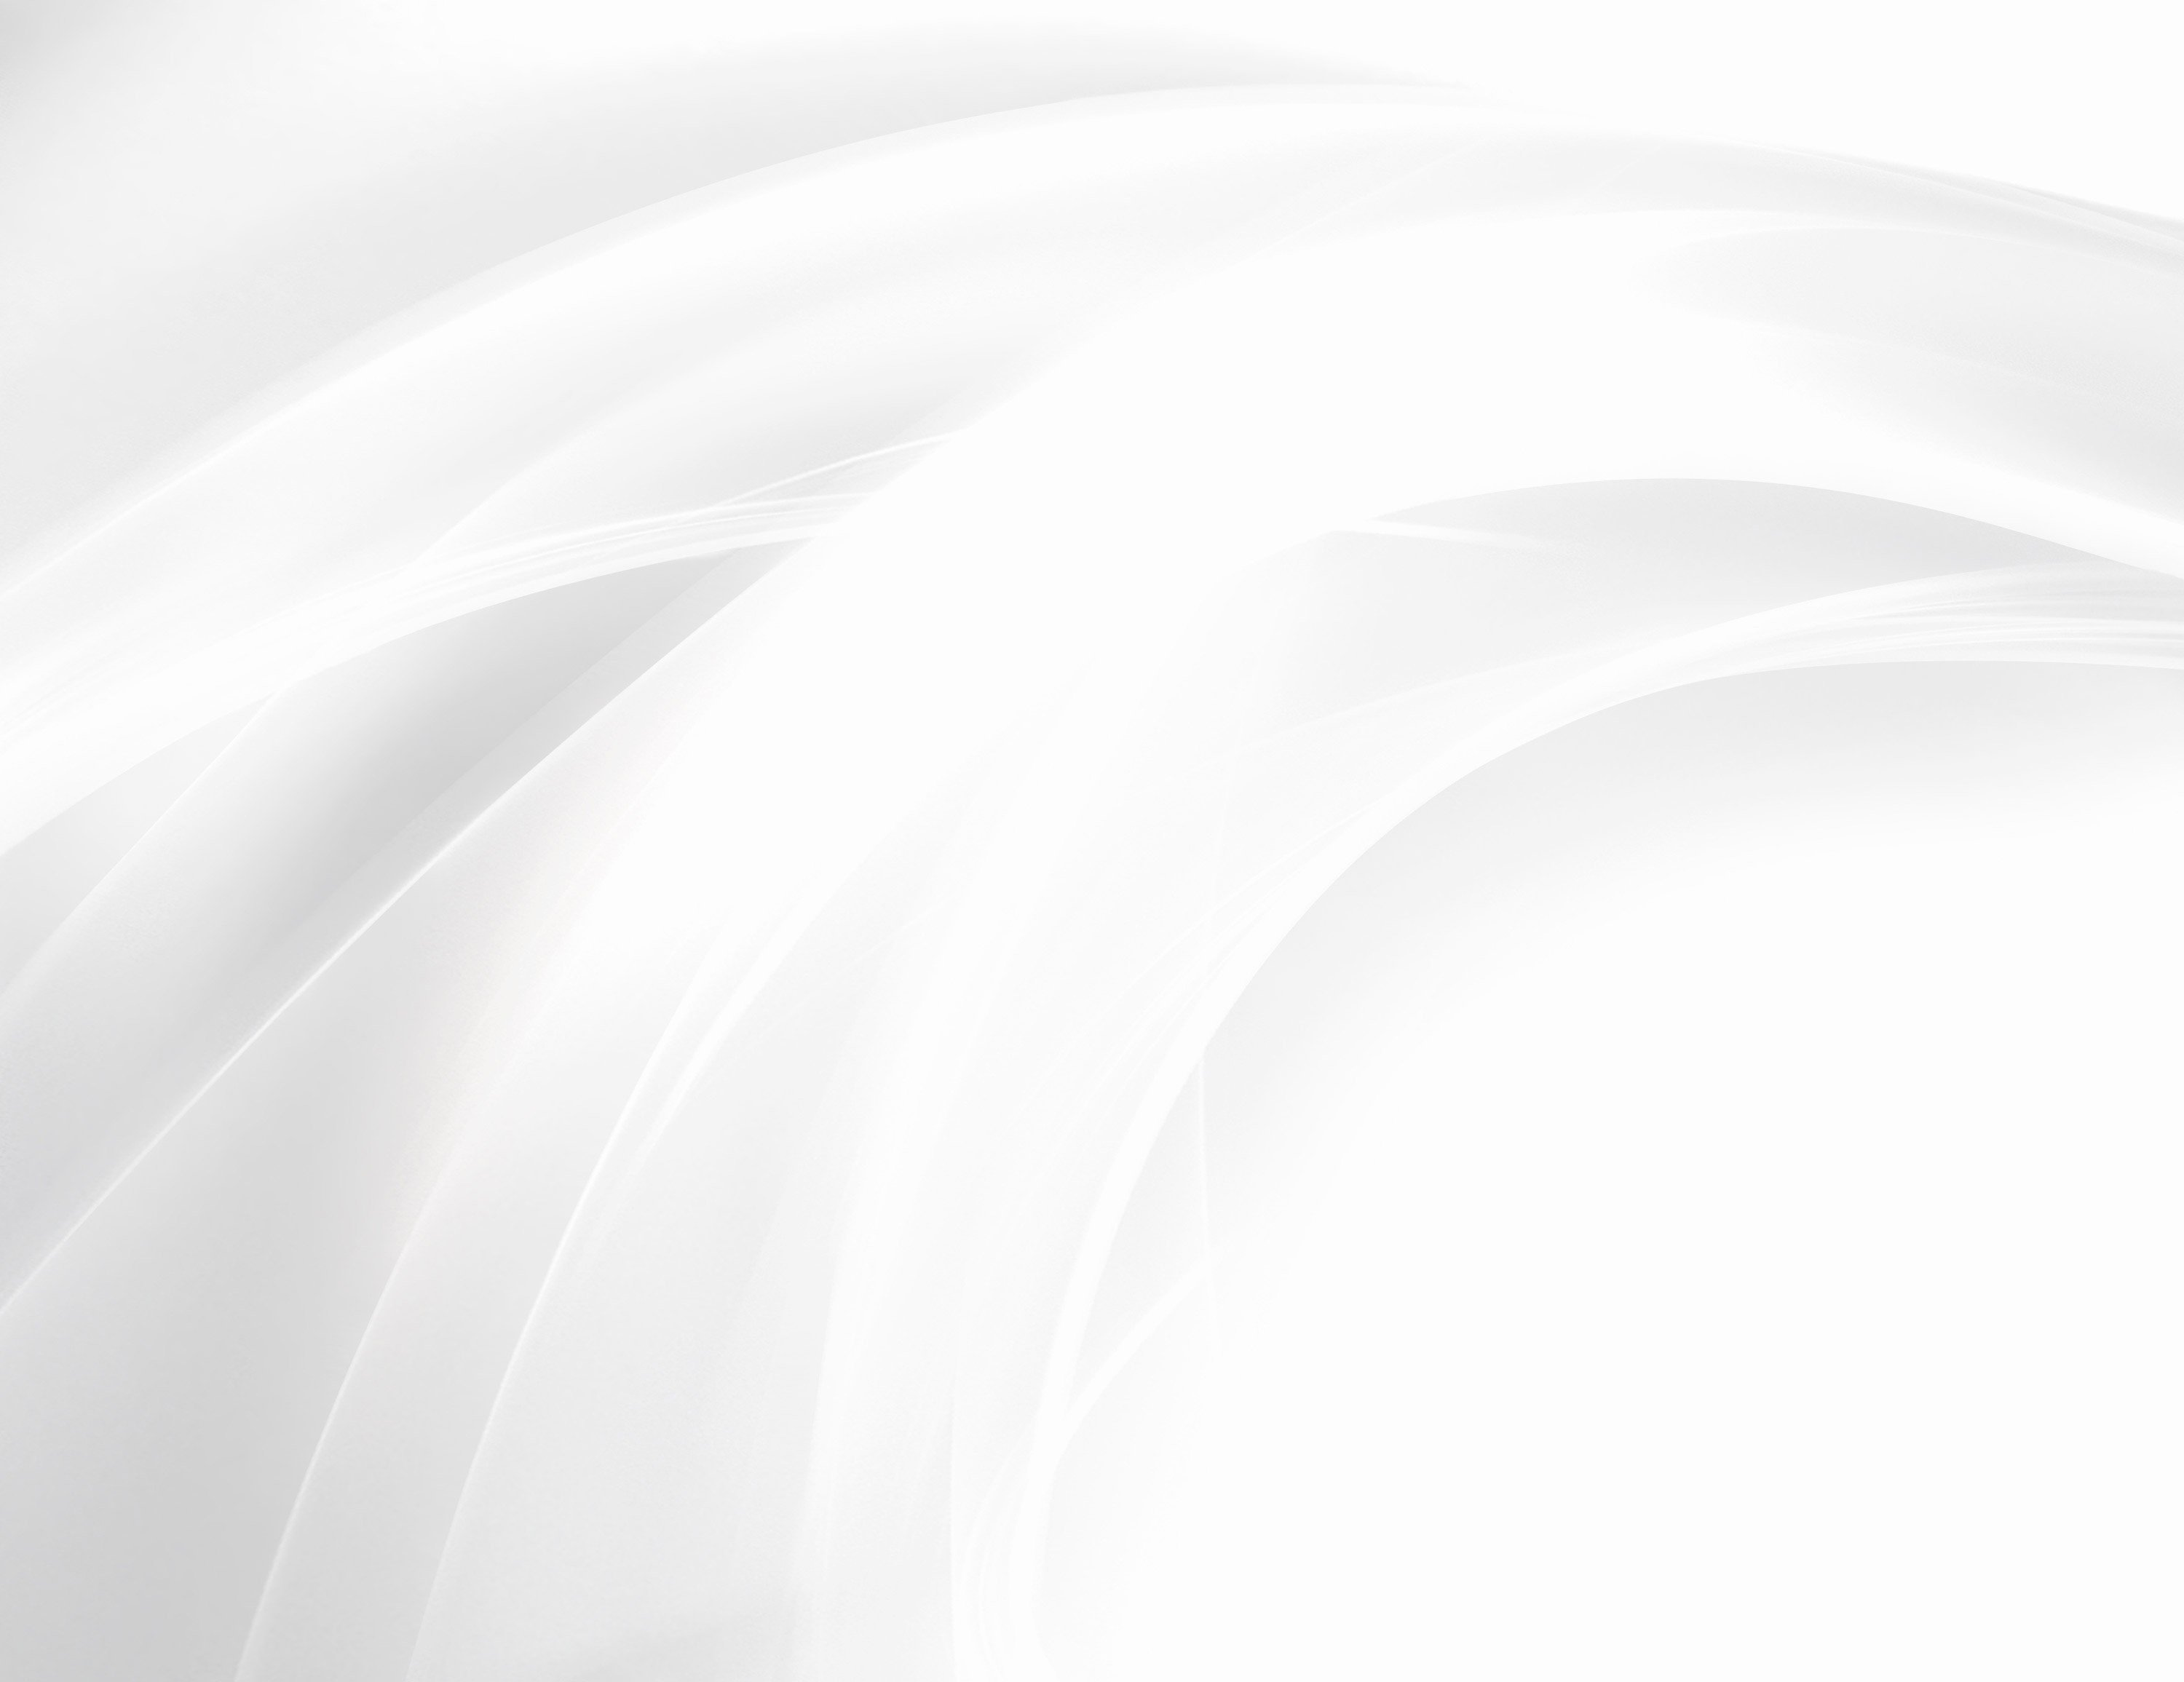 White Abstract HD Wallpapers | WallpapersIn4k.net